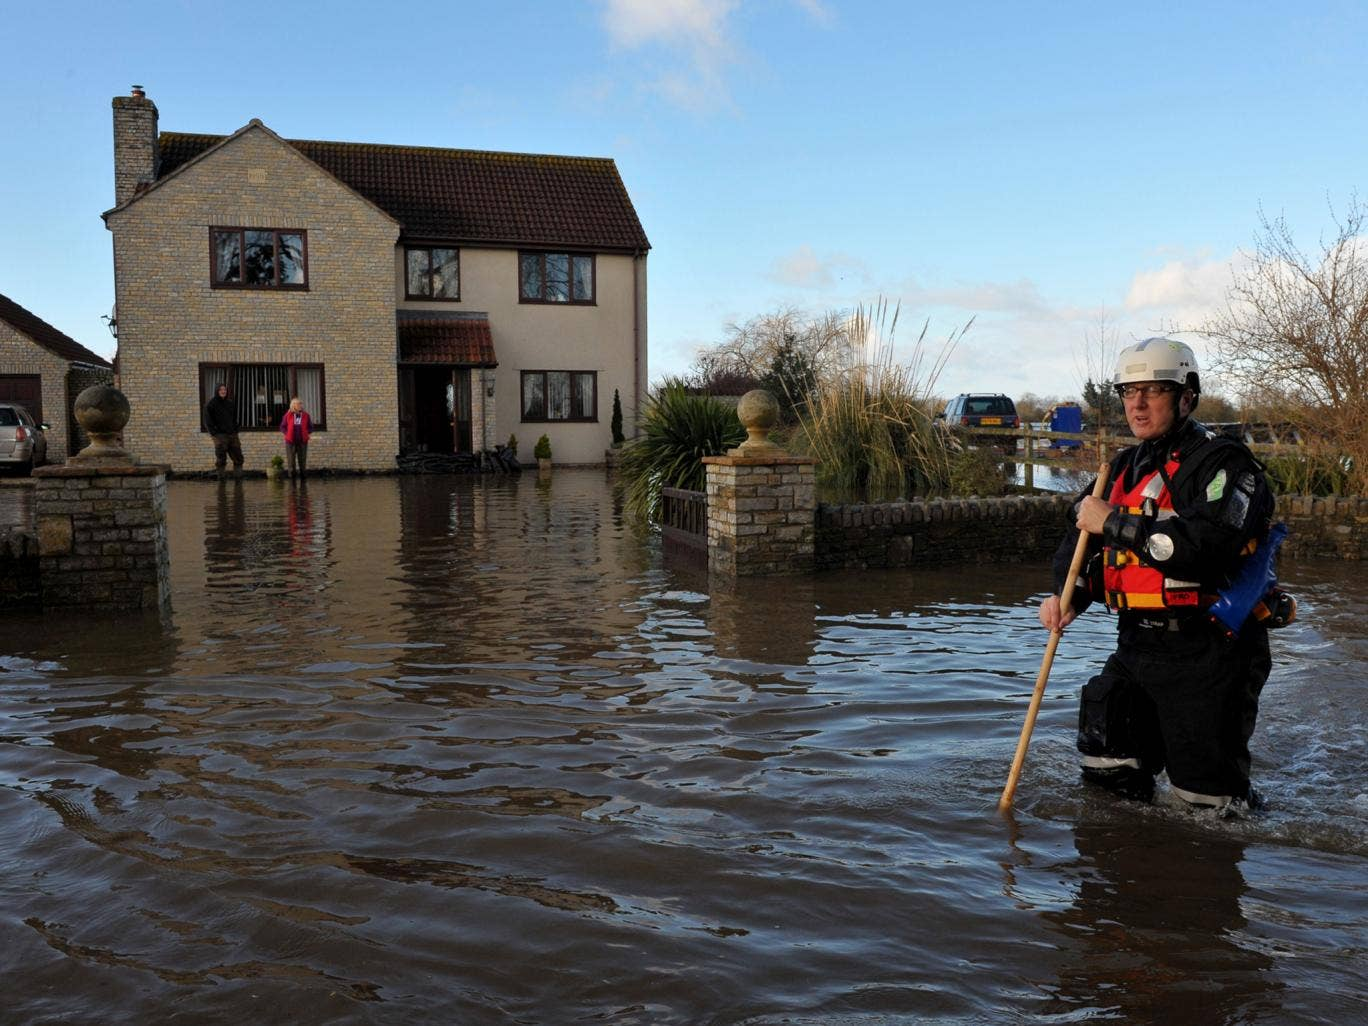 An emergency worker walks down the road outside a property in Moorland, Somerset, after residents were advised to evacuate after flood defences were breached overnight